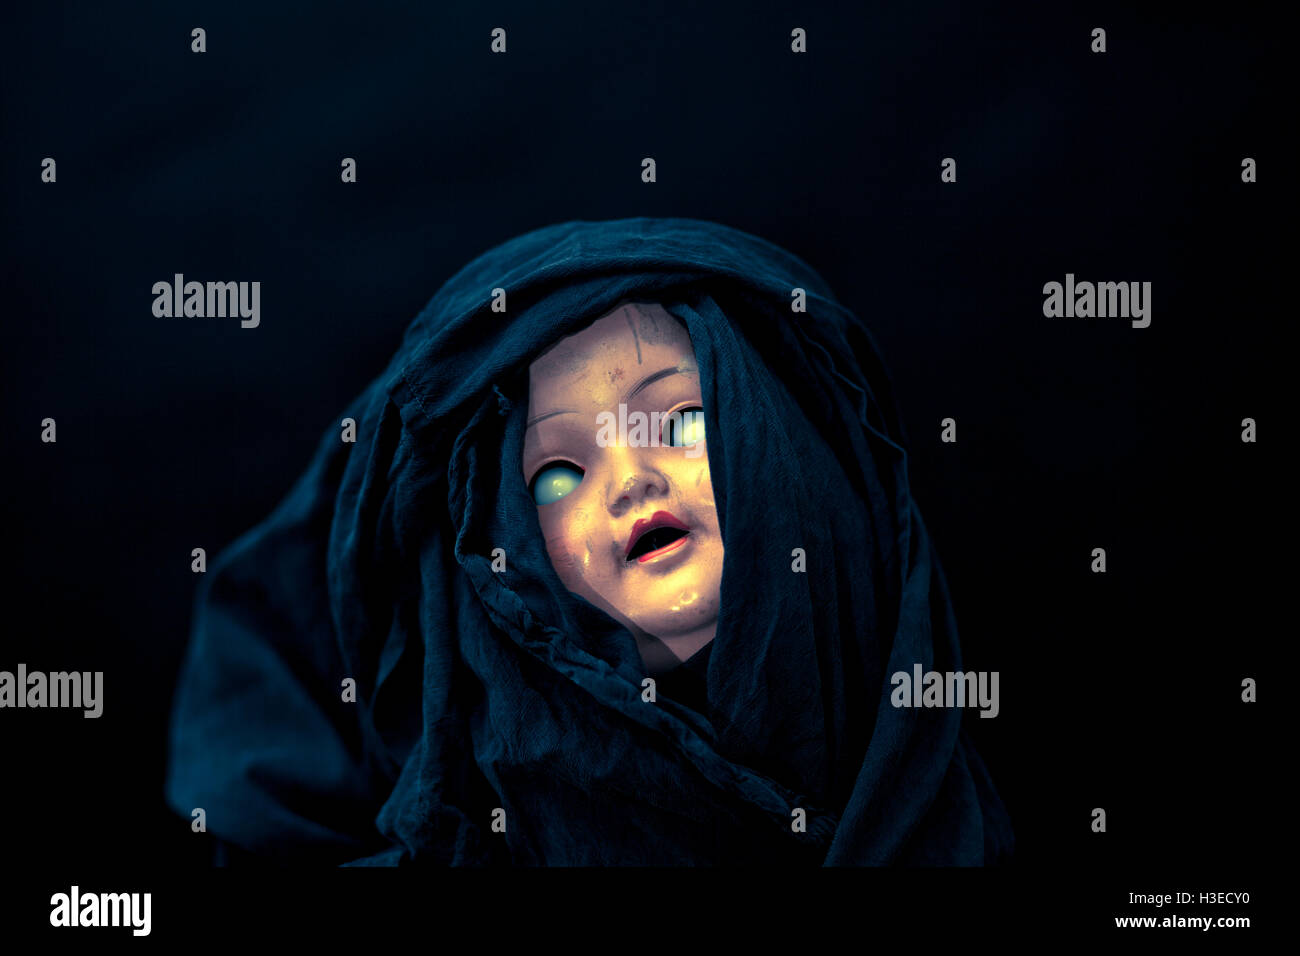 Creepy doll face - Stock Image